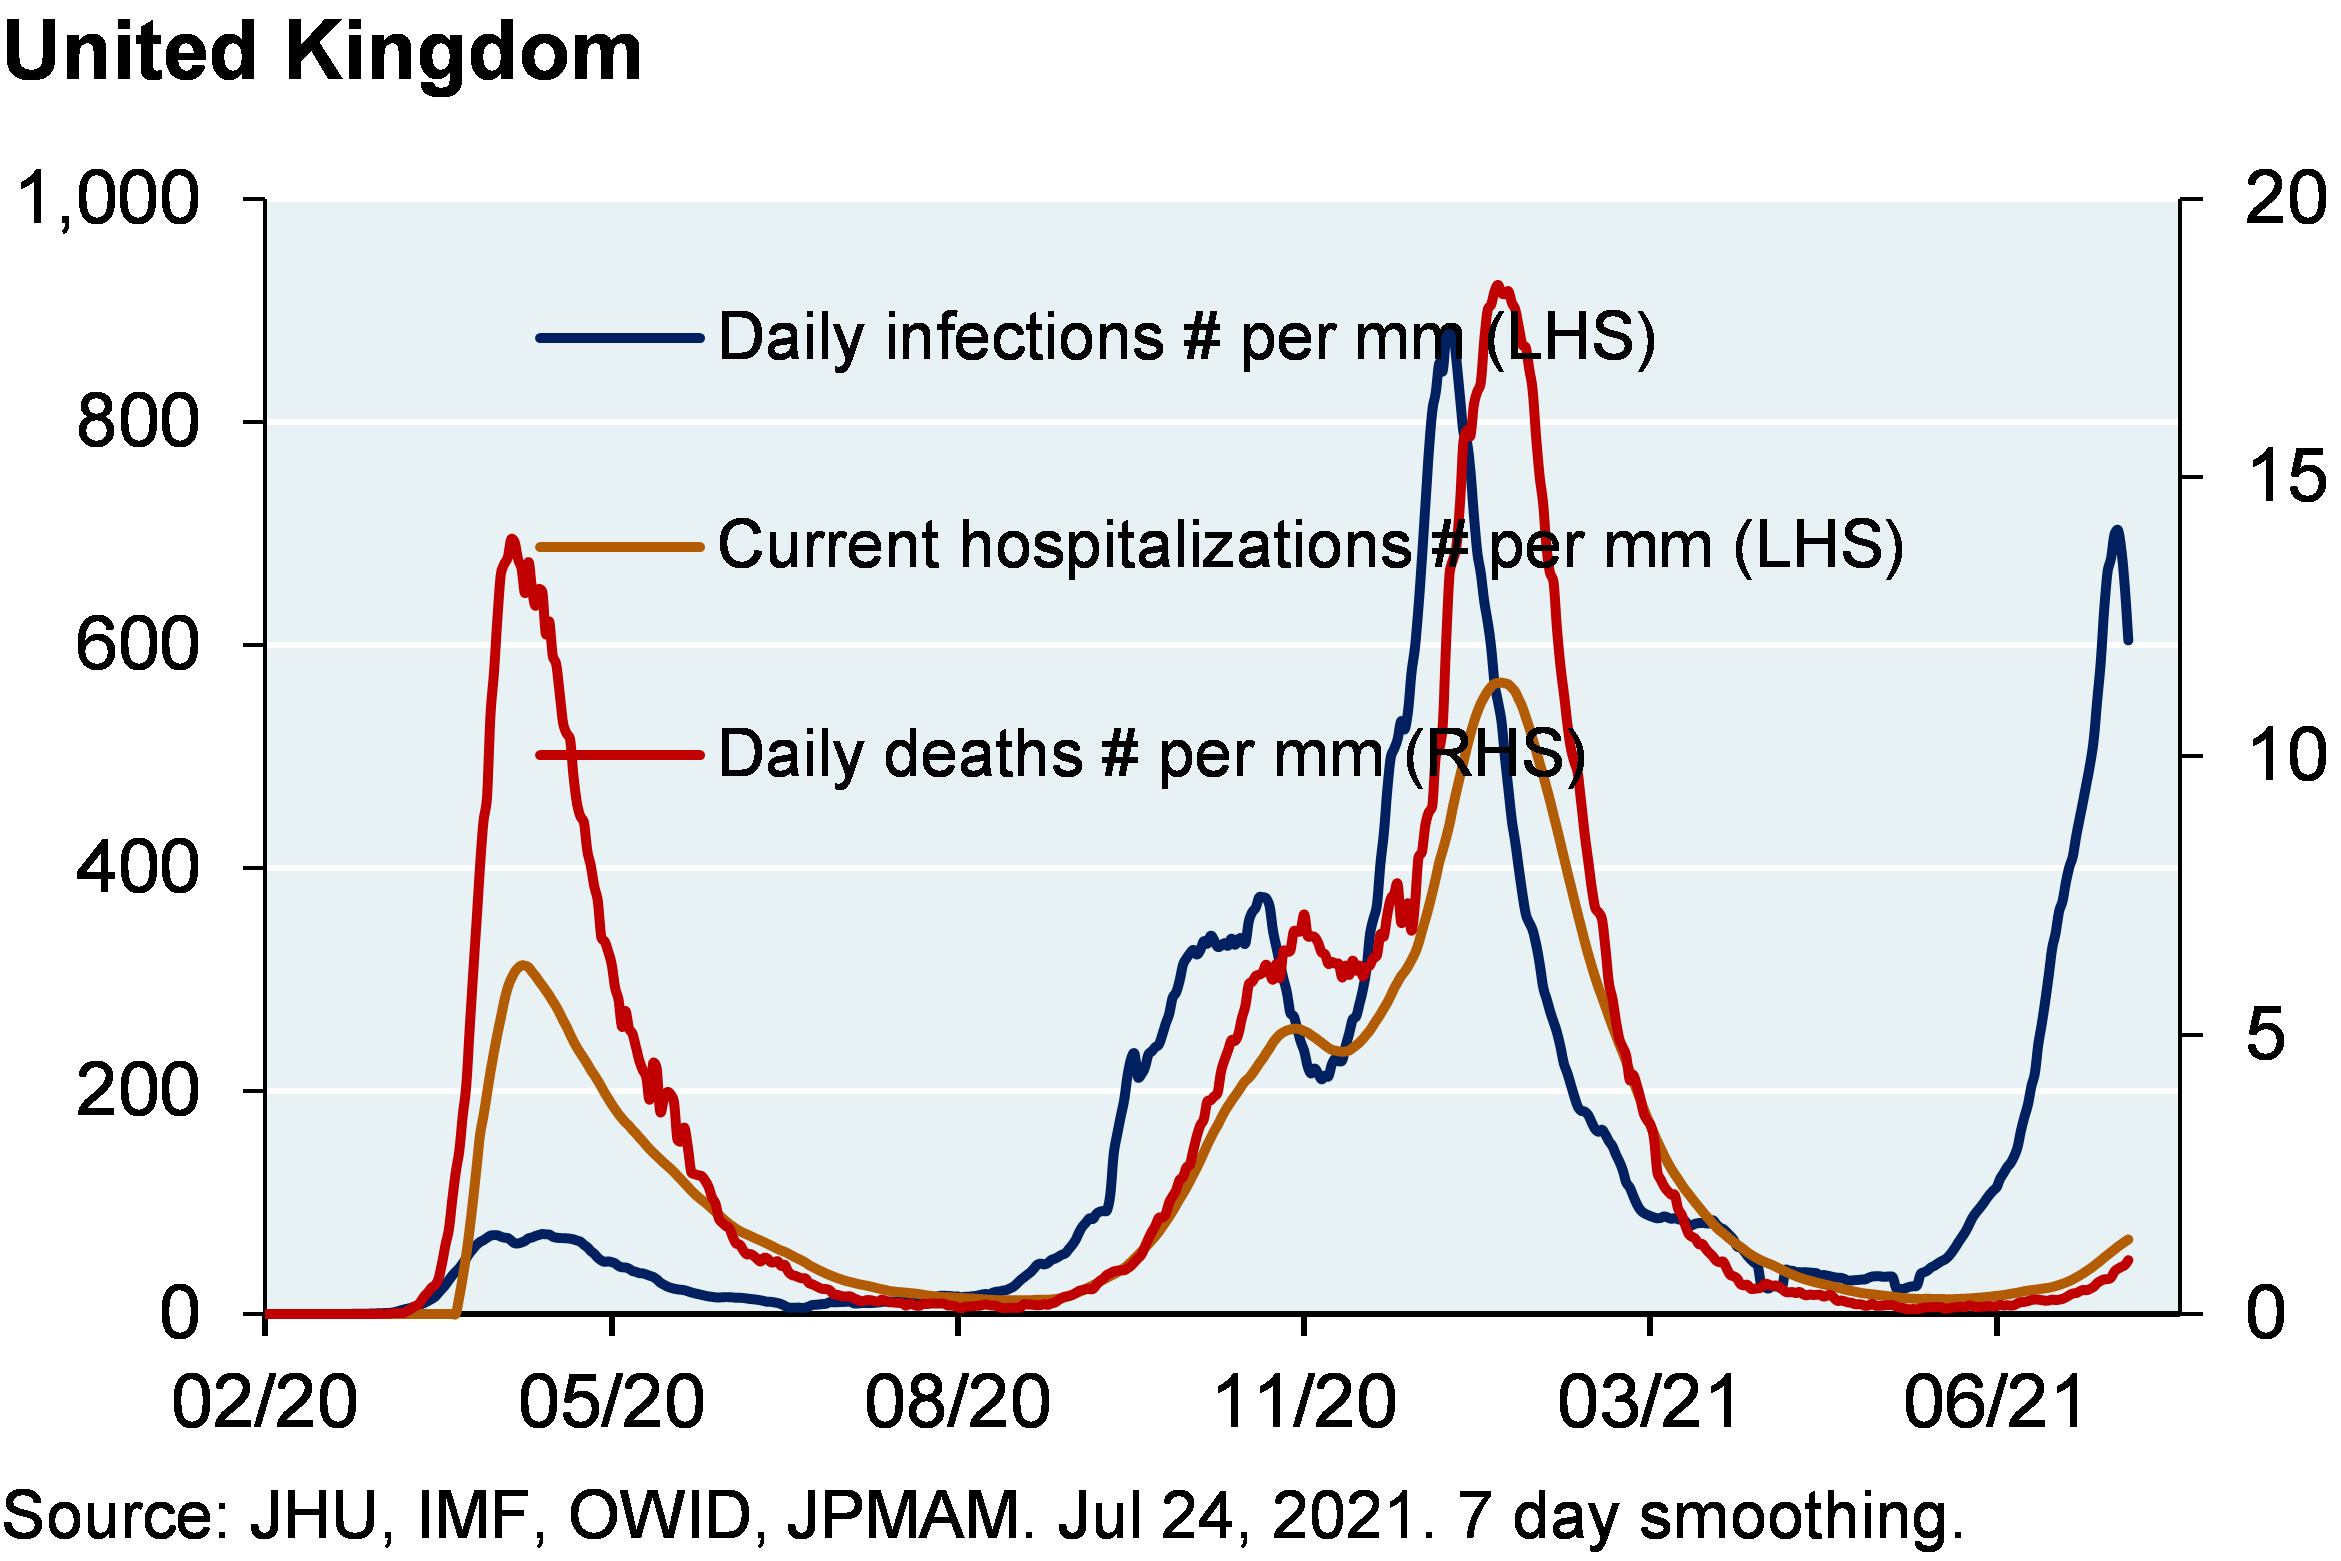 Line chart shows daily infections per million, current hospitalizations per million and daily deaths per million for the United Kingdom since February 2020. Chart shows that infections per million have spiked to a most recent value of around 700 infections per million while hospitalizations have remained at around 50 per million and deaths are around 1 per million. In previous infection spikes, deaths and hospitalizations increased relatively in line with infections.